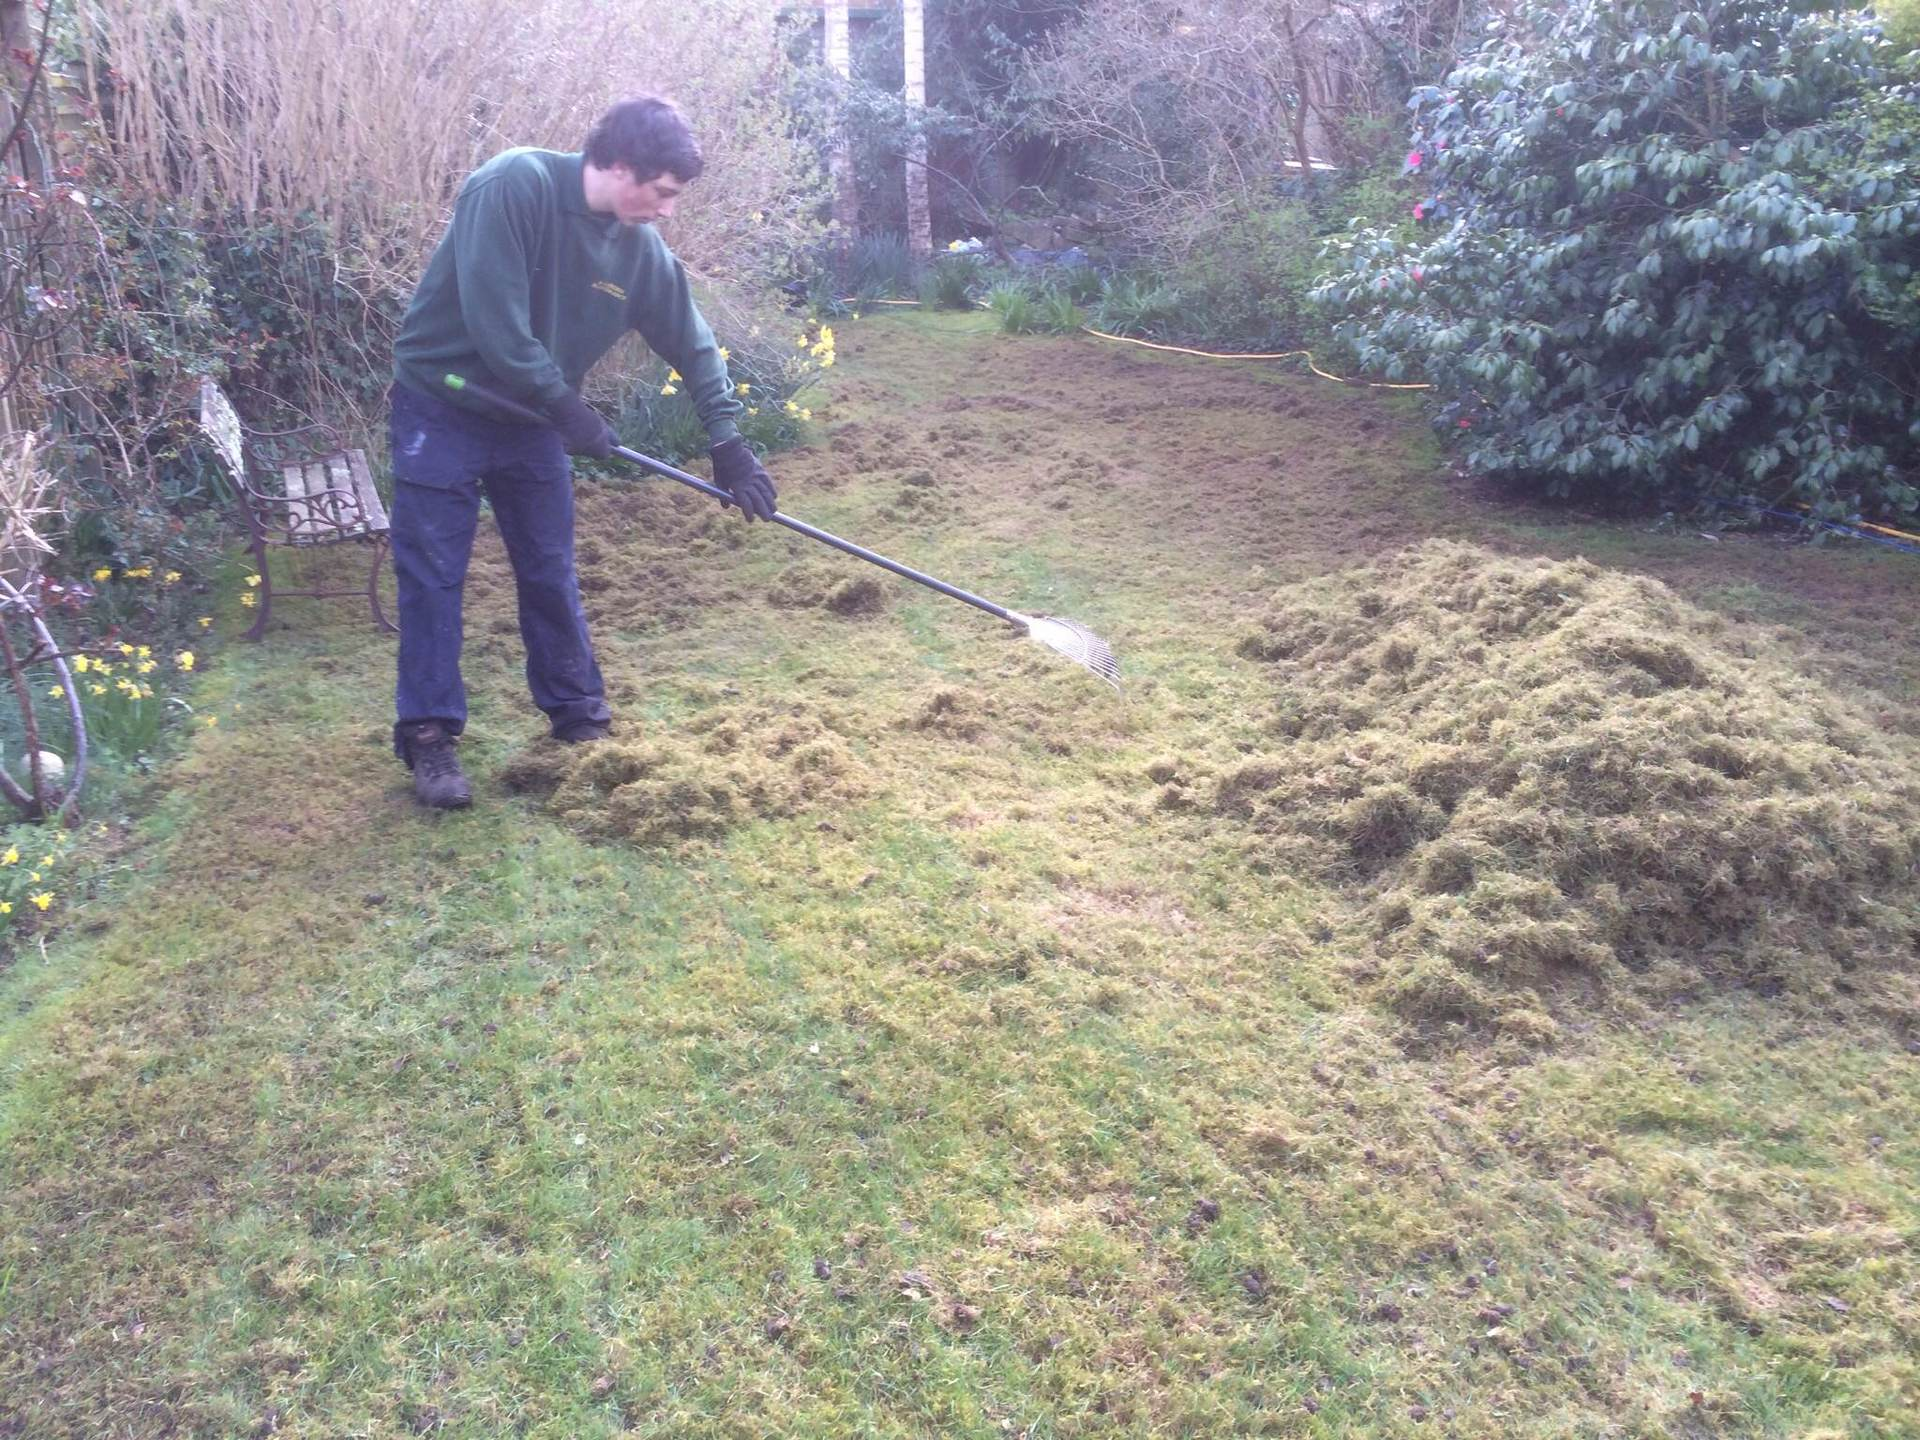 Lawn thatch being collected